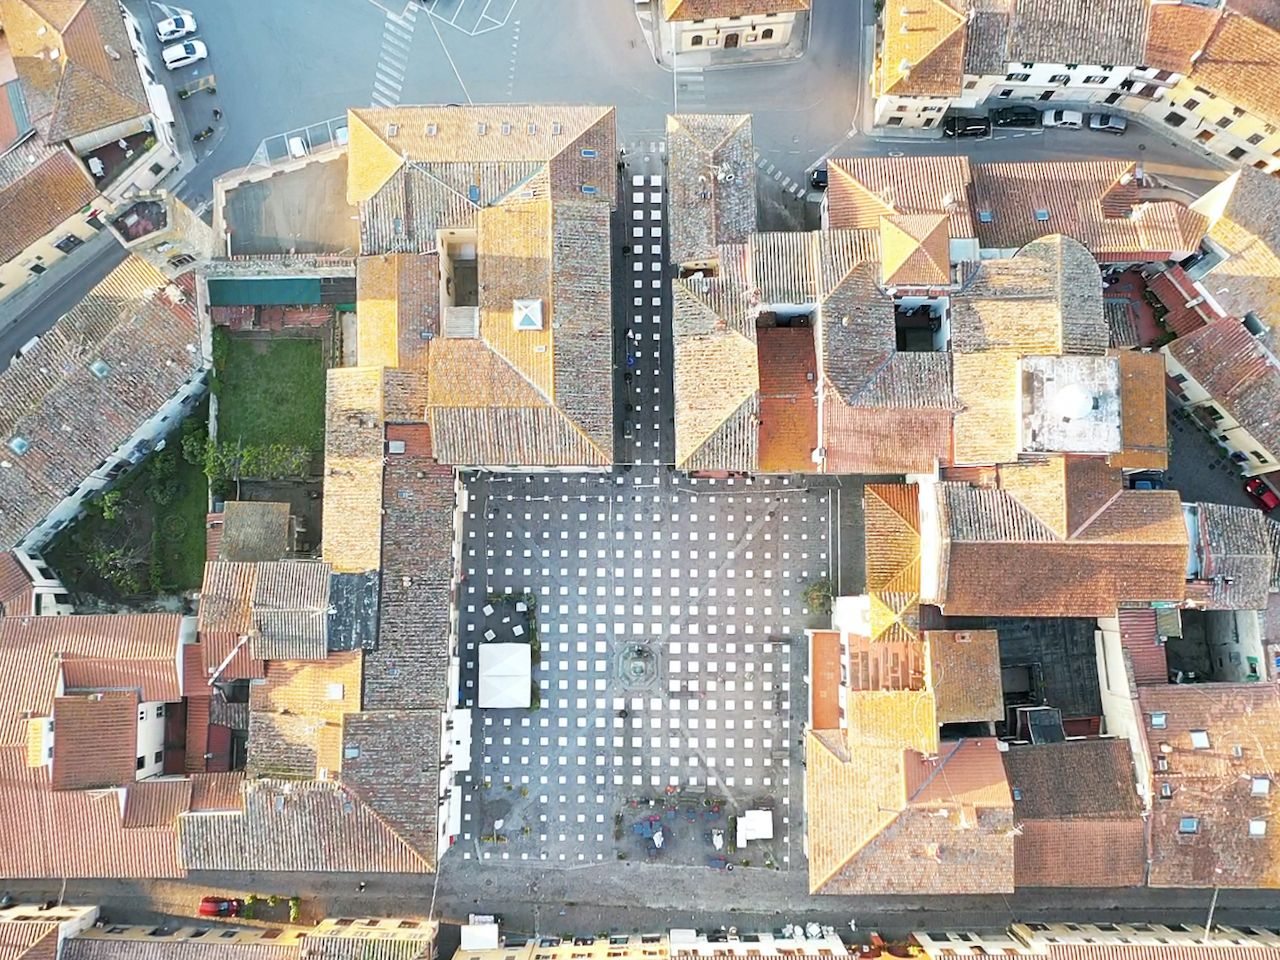 Art installation in Piazza Giotto in Vicchio Italy from above